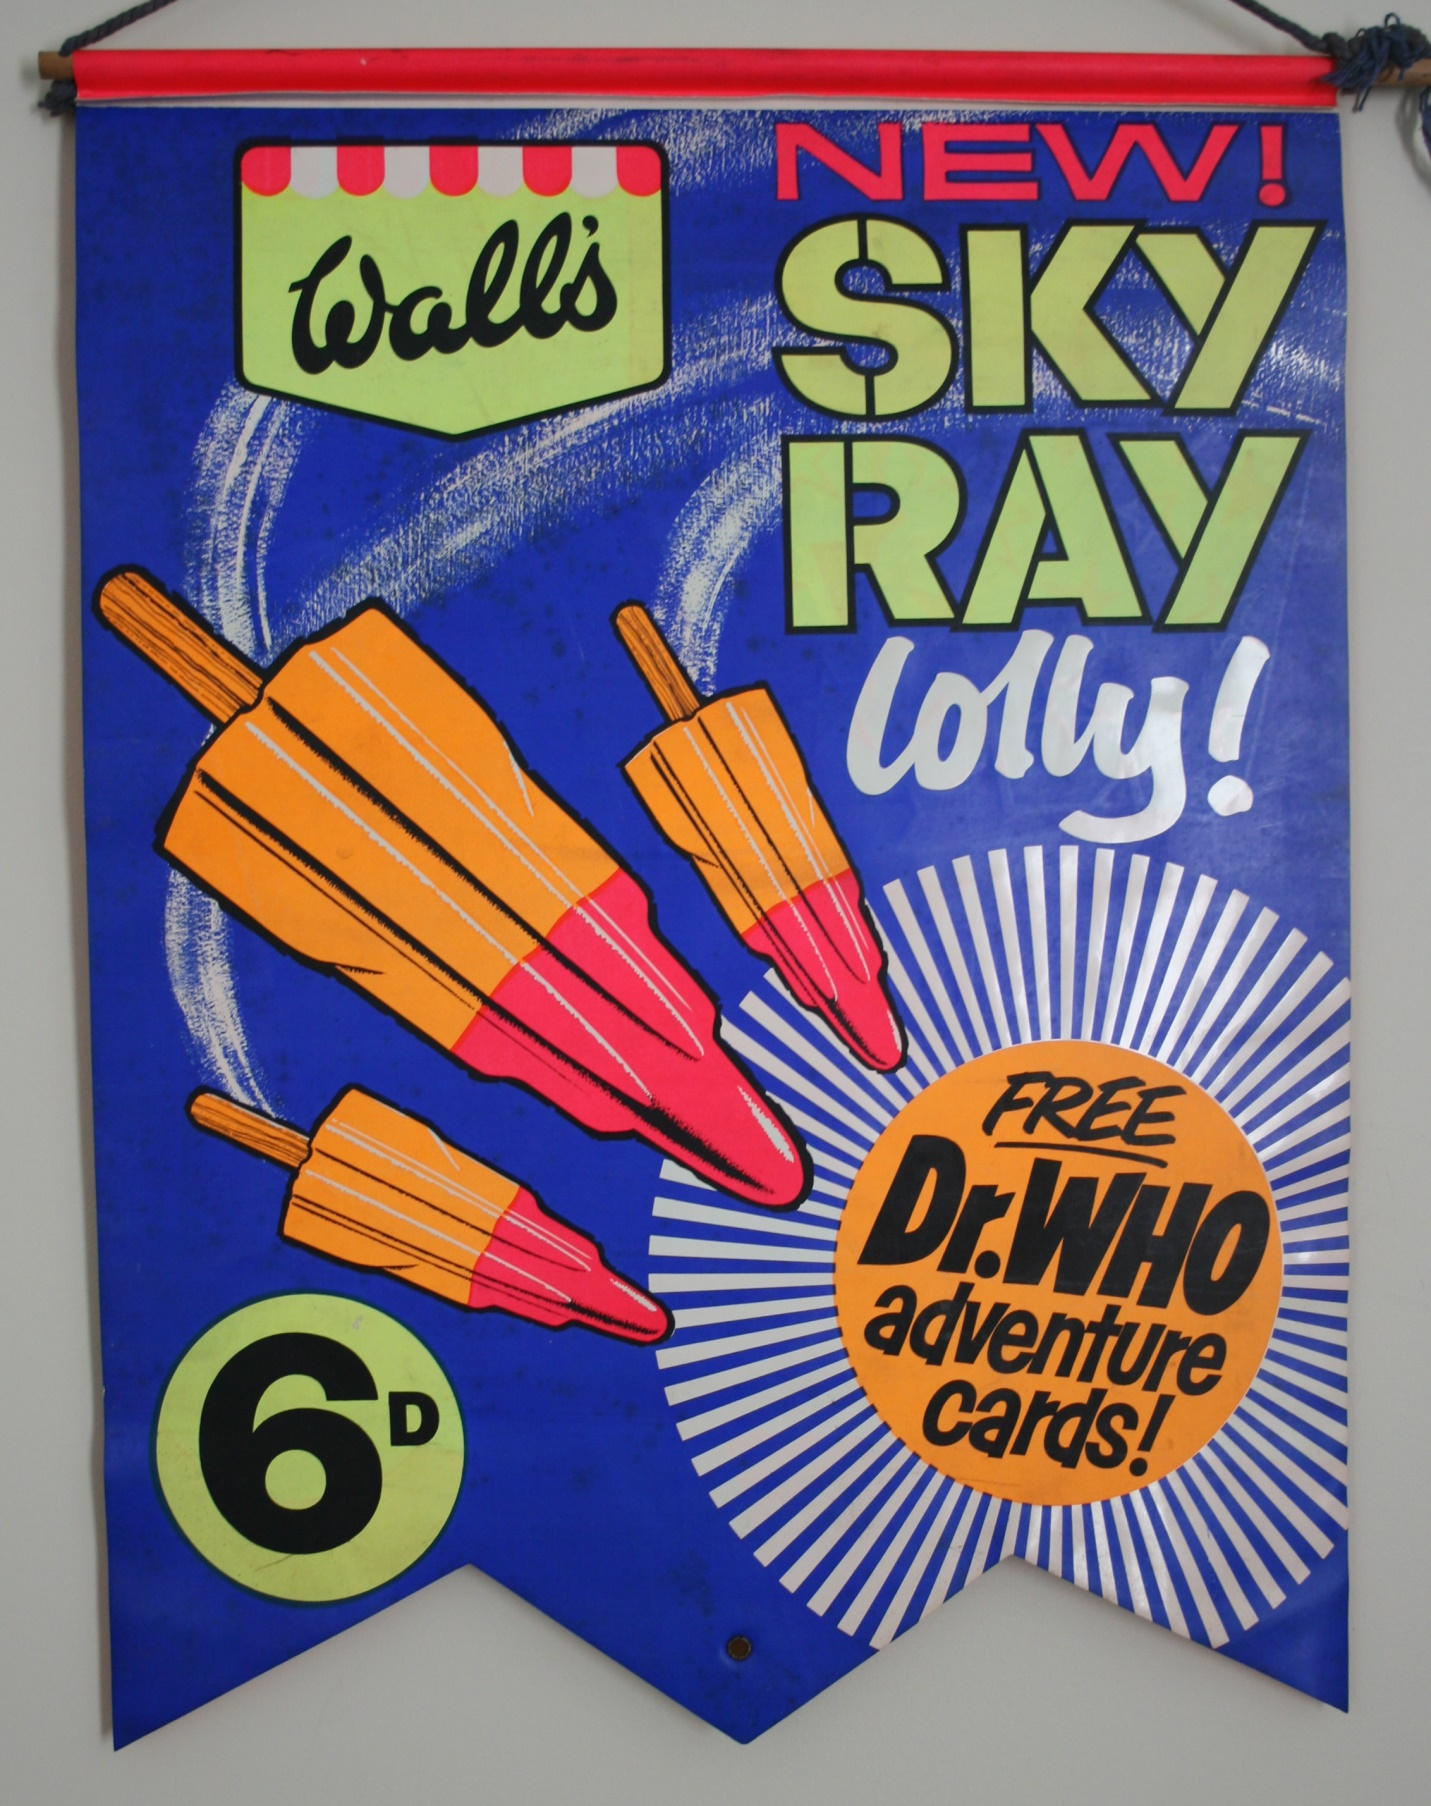 Shop display banner for the Wall's Ice Cream Sky Ray Doctor Who promotion